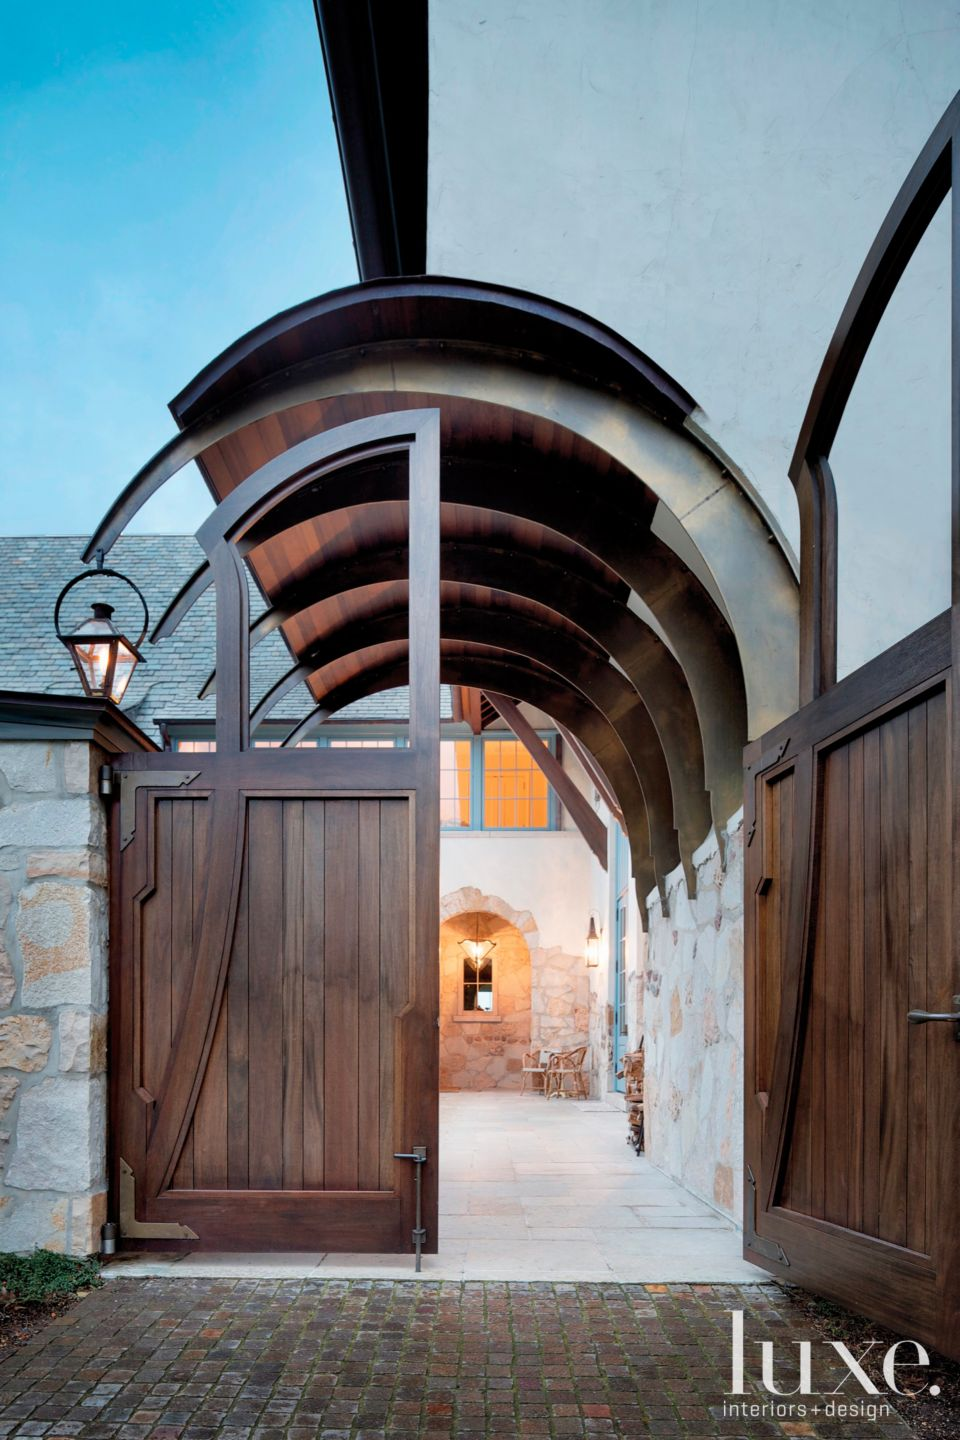 Contemporary Neutral Arched Doorway with Gas Lanterns